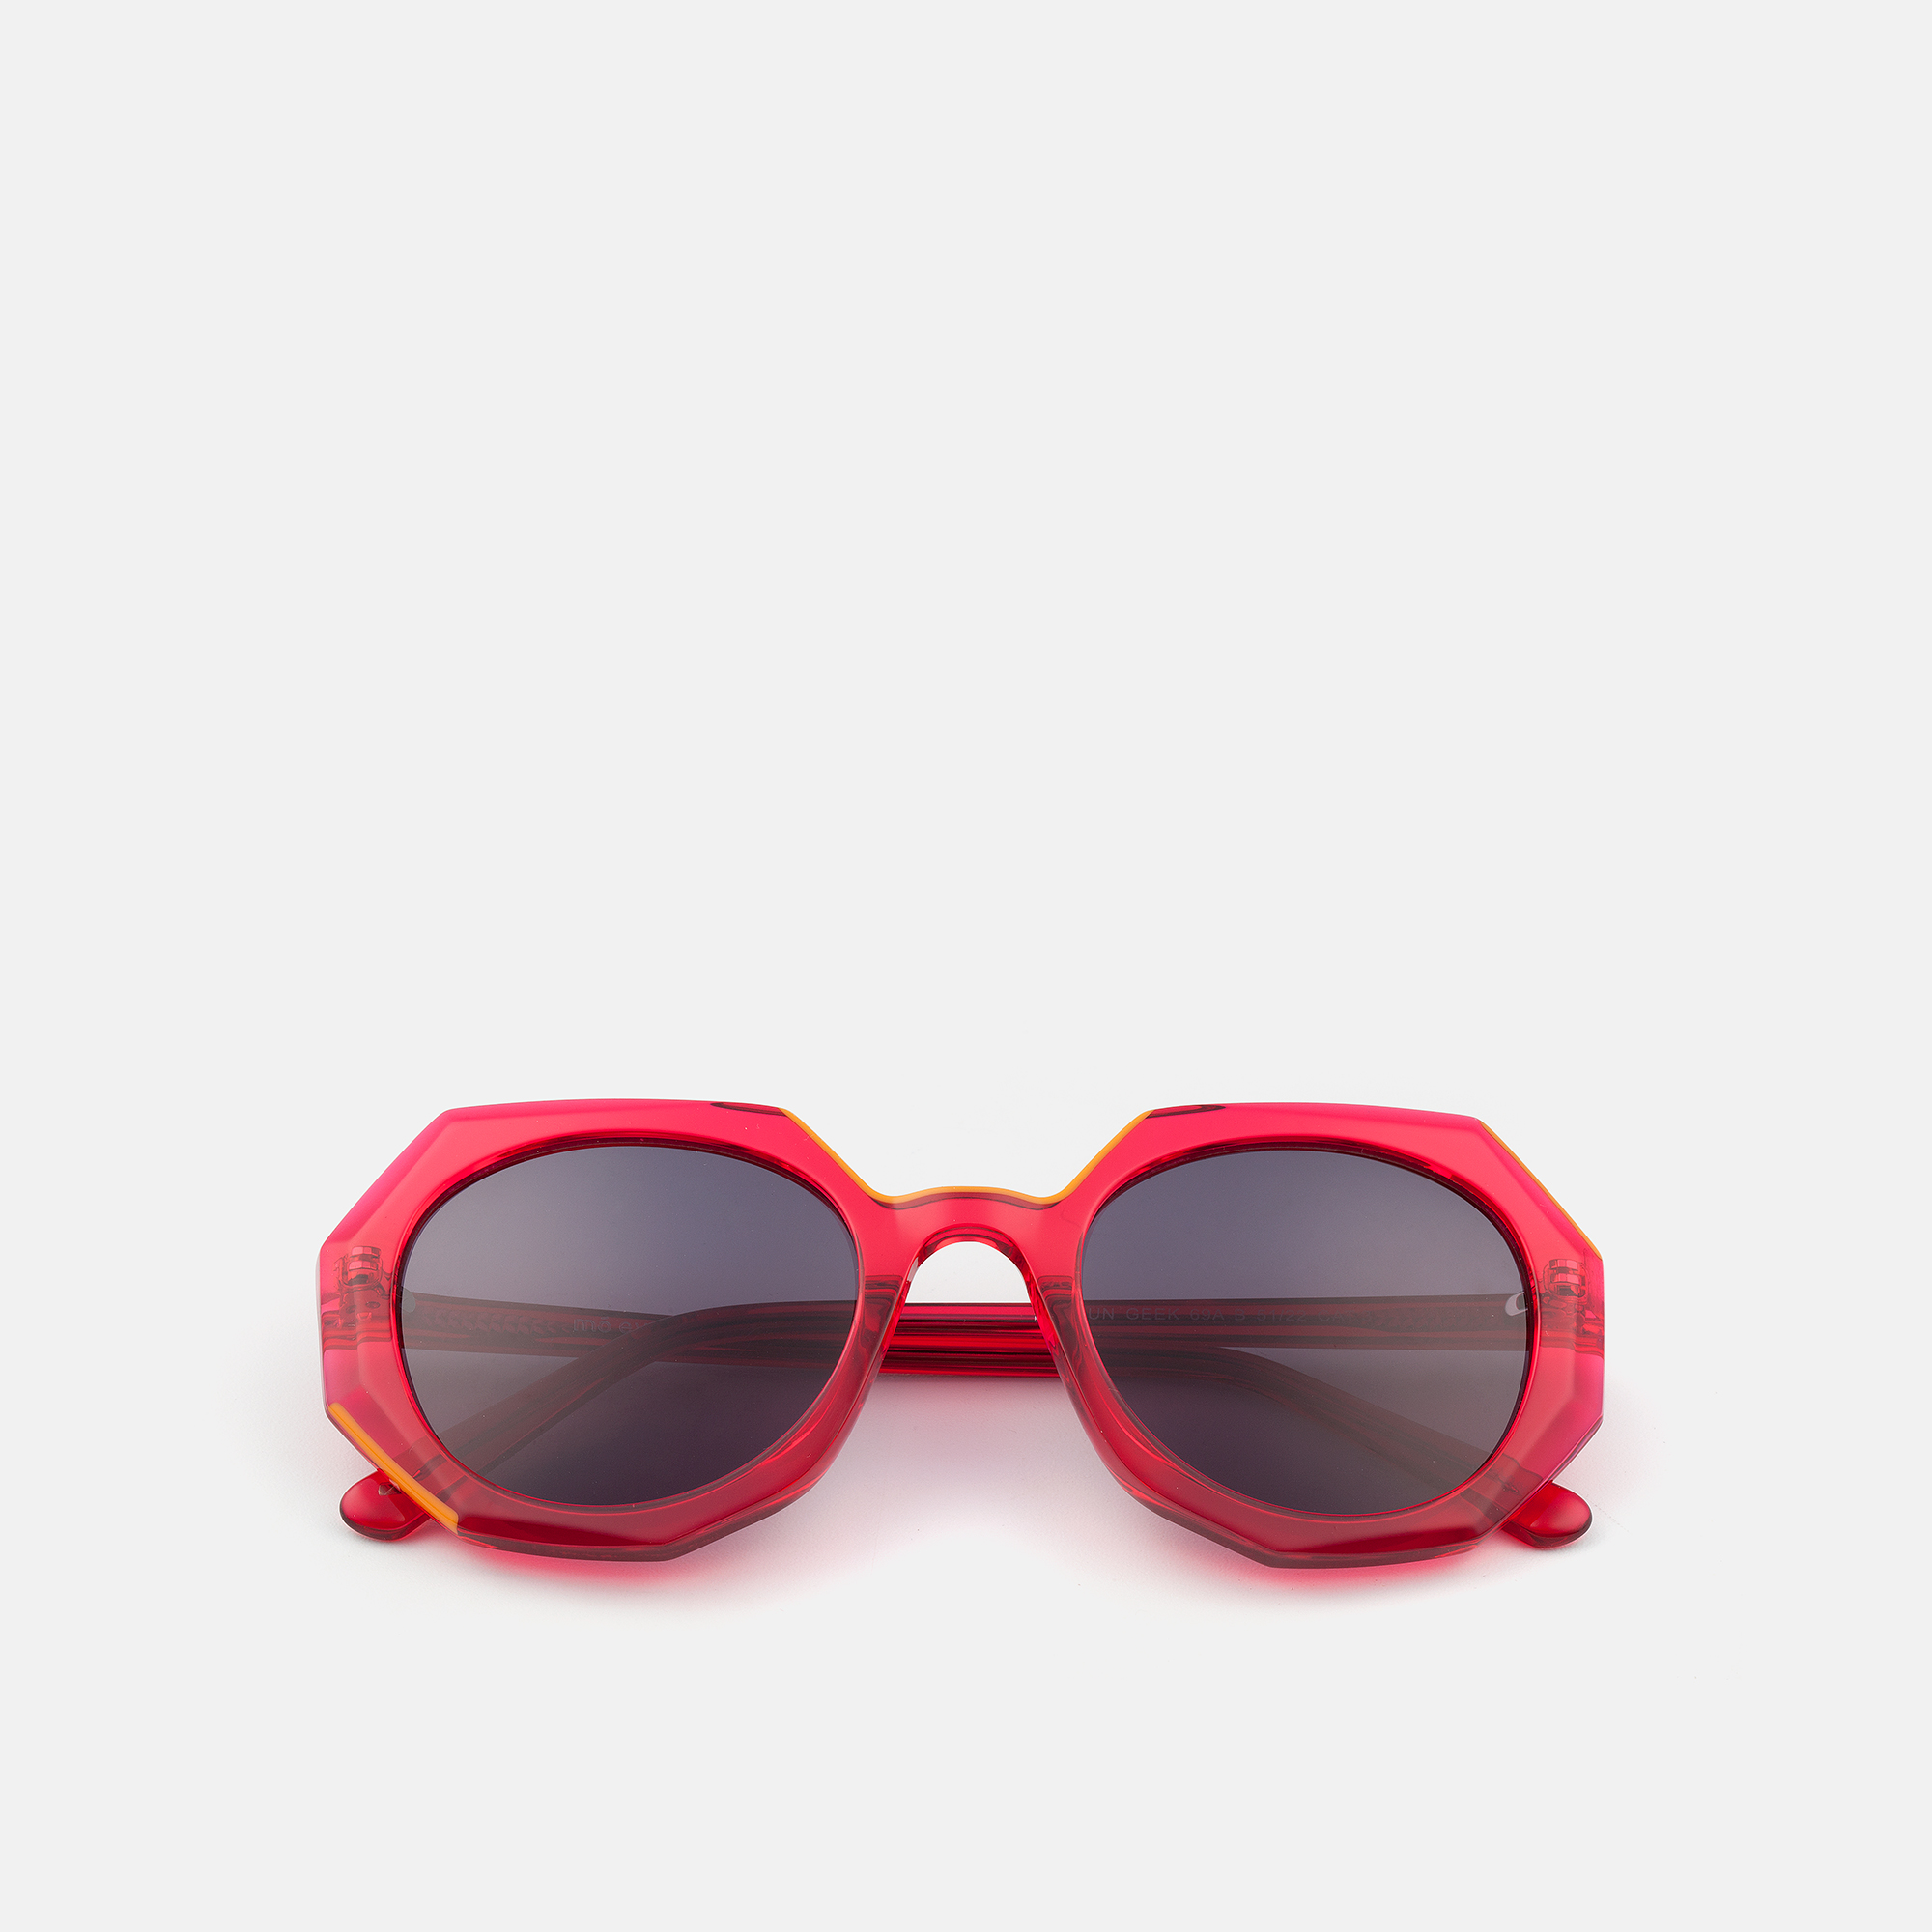 mó sun geek 69A B, red/orange, hi-res